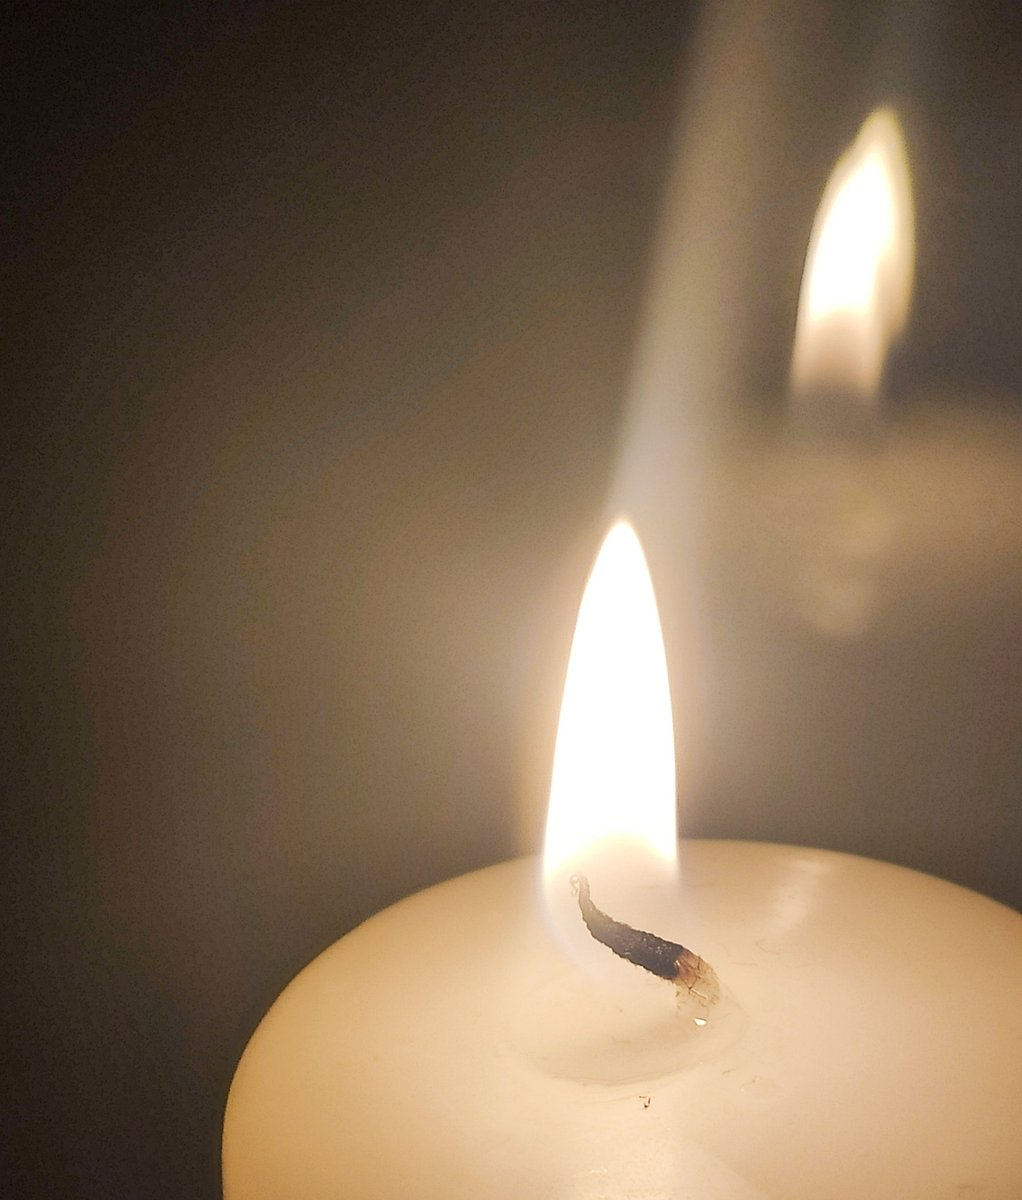 We stand with all survivors of genocide and stand against hatred as we #LightTheDarkness  #HolocaustMemorialDay